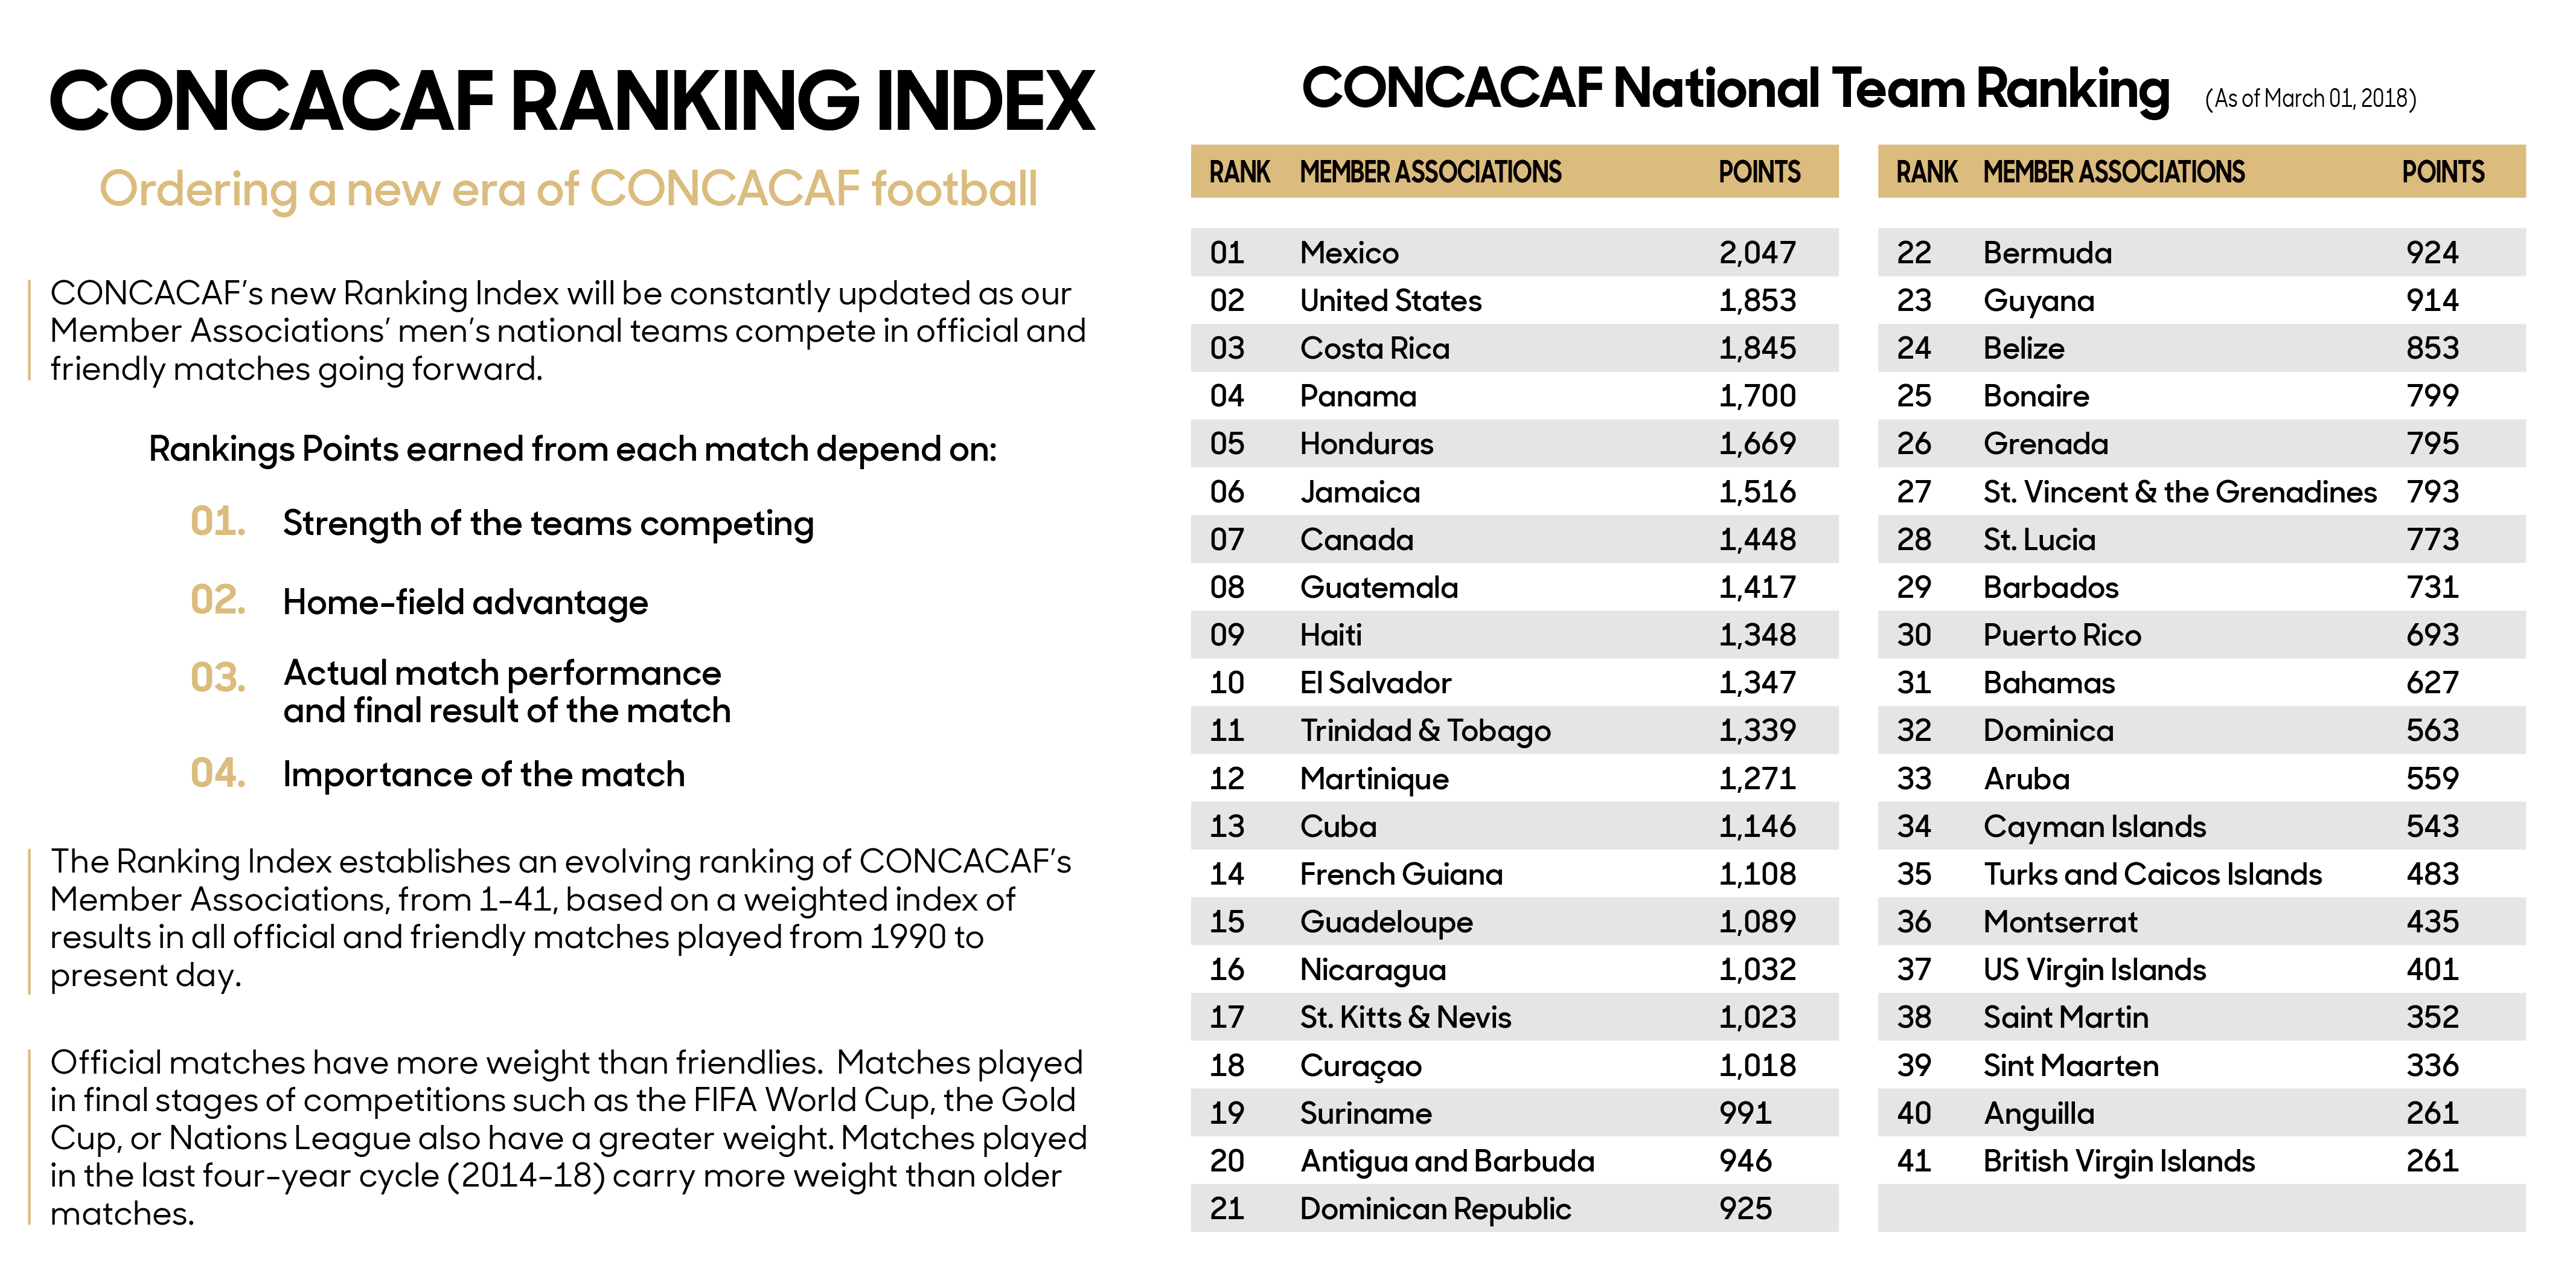 CONCACAF Ranking Index (March 2018)